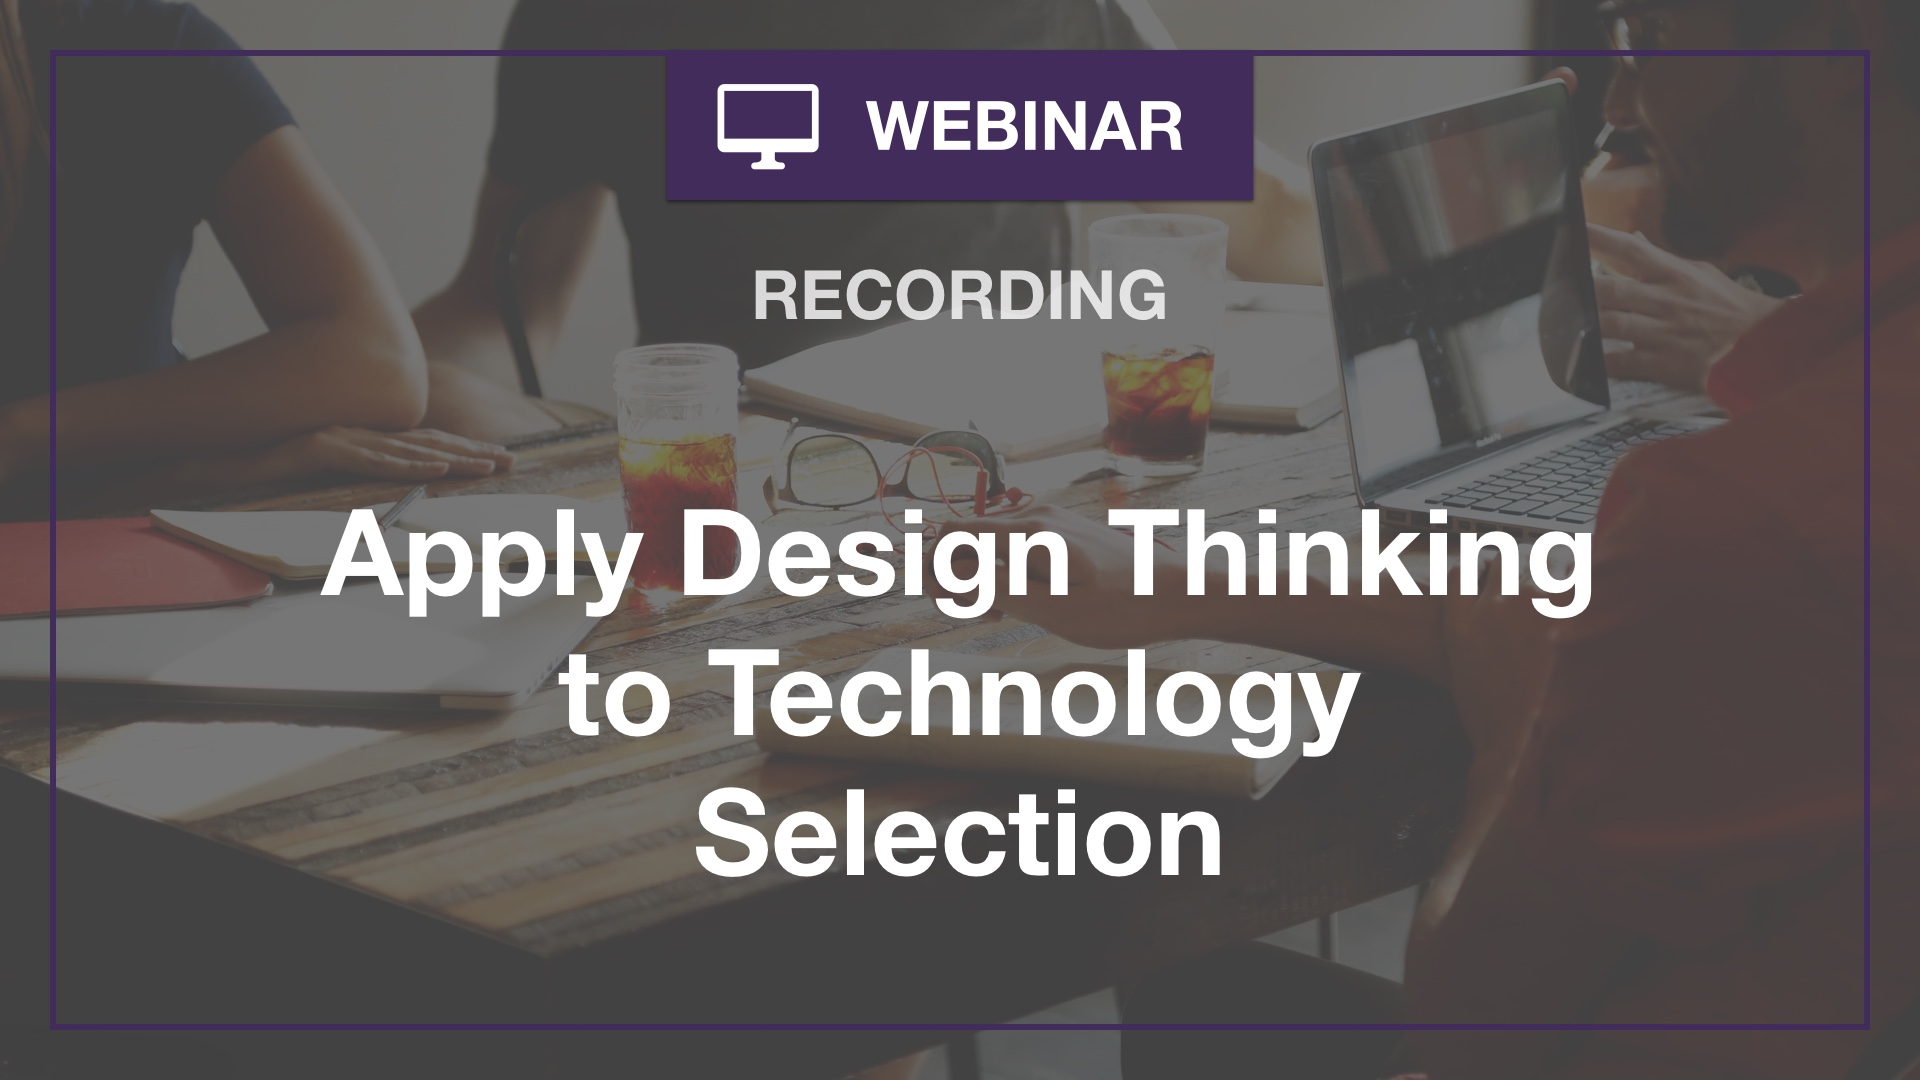 Apply design thinking to technology selection